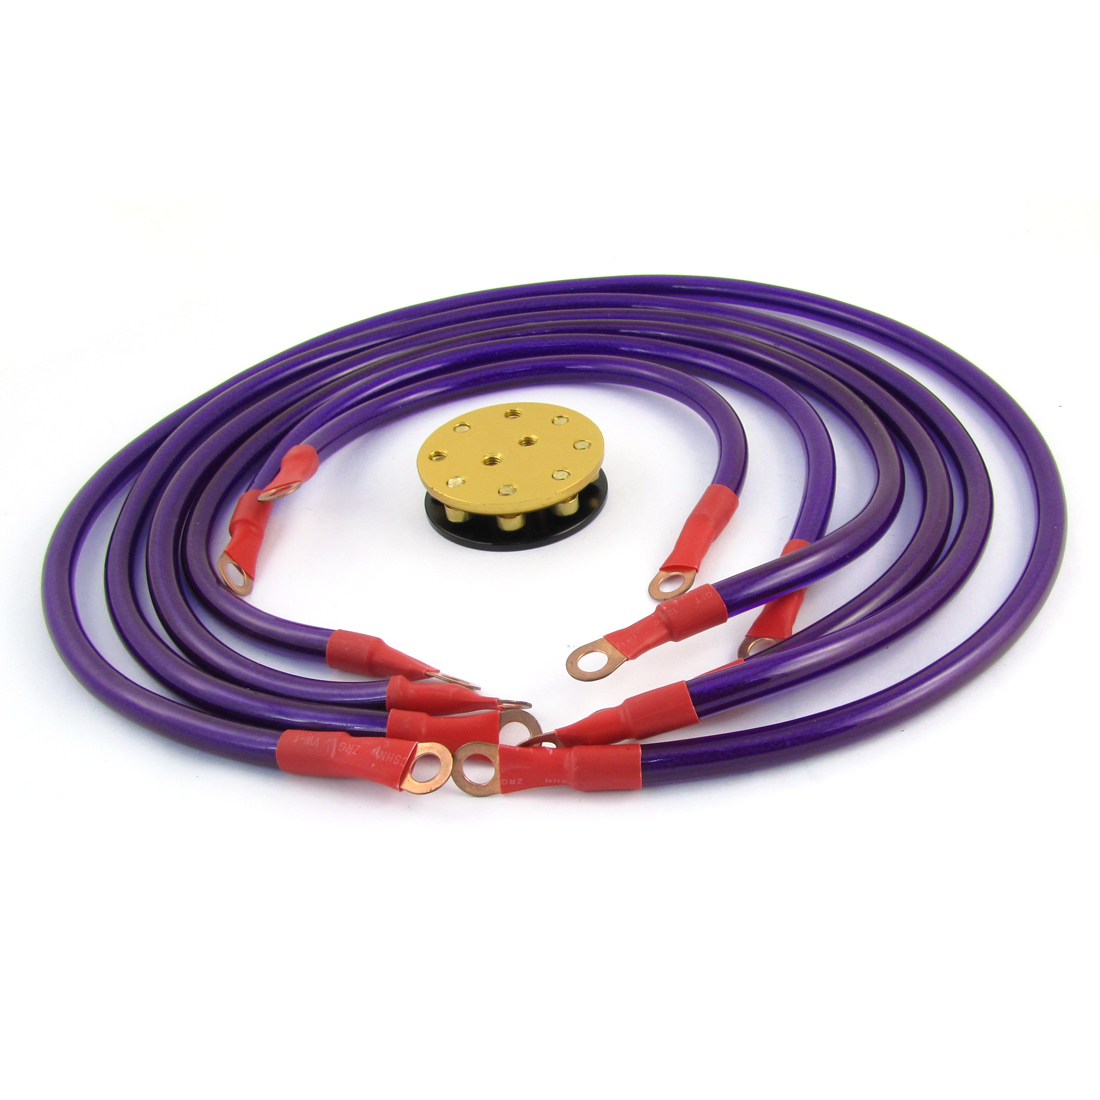 6 x Replacement Ground Wires Cables Kit Purple for Vehicle Car